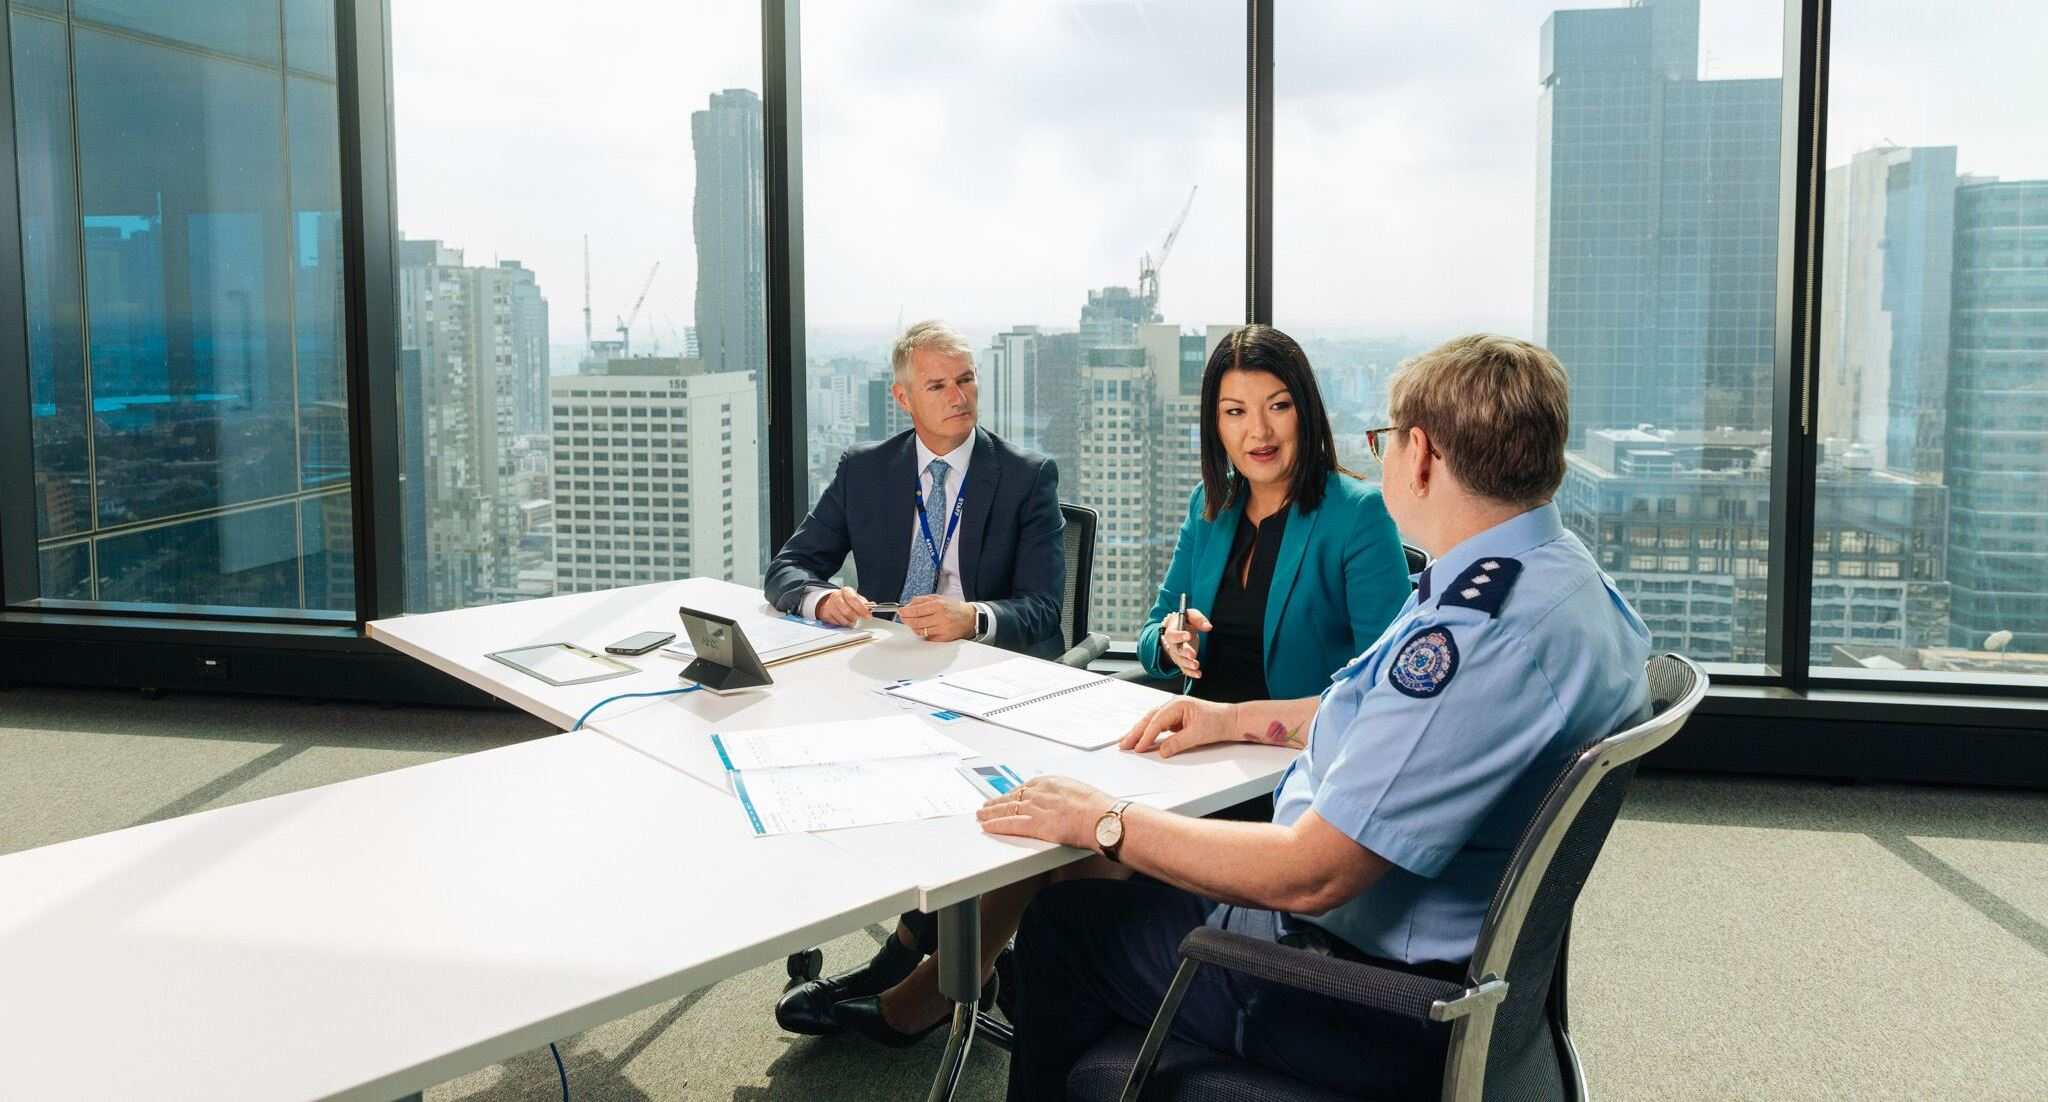 A female executive director with male and uniformed female colleague in discussion in a meeting room.